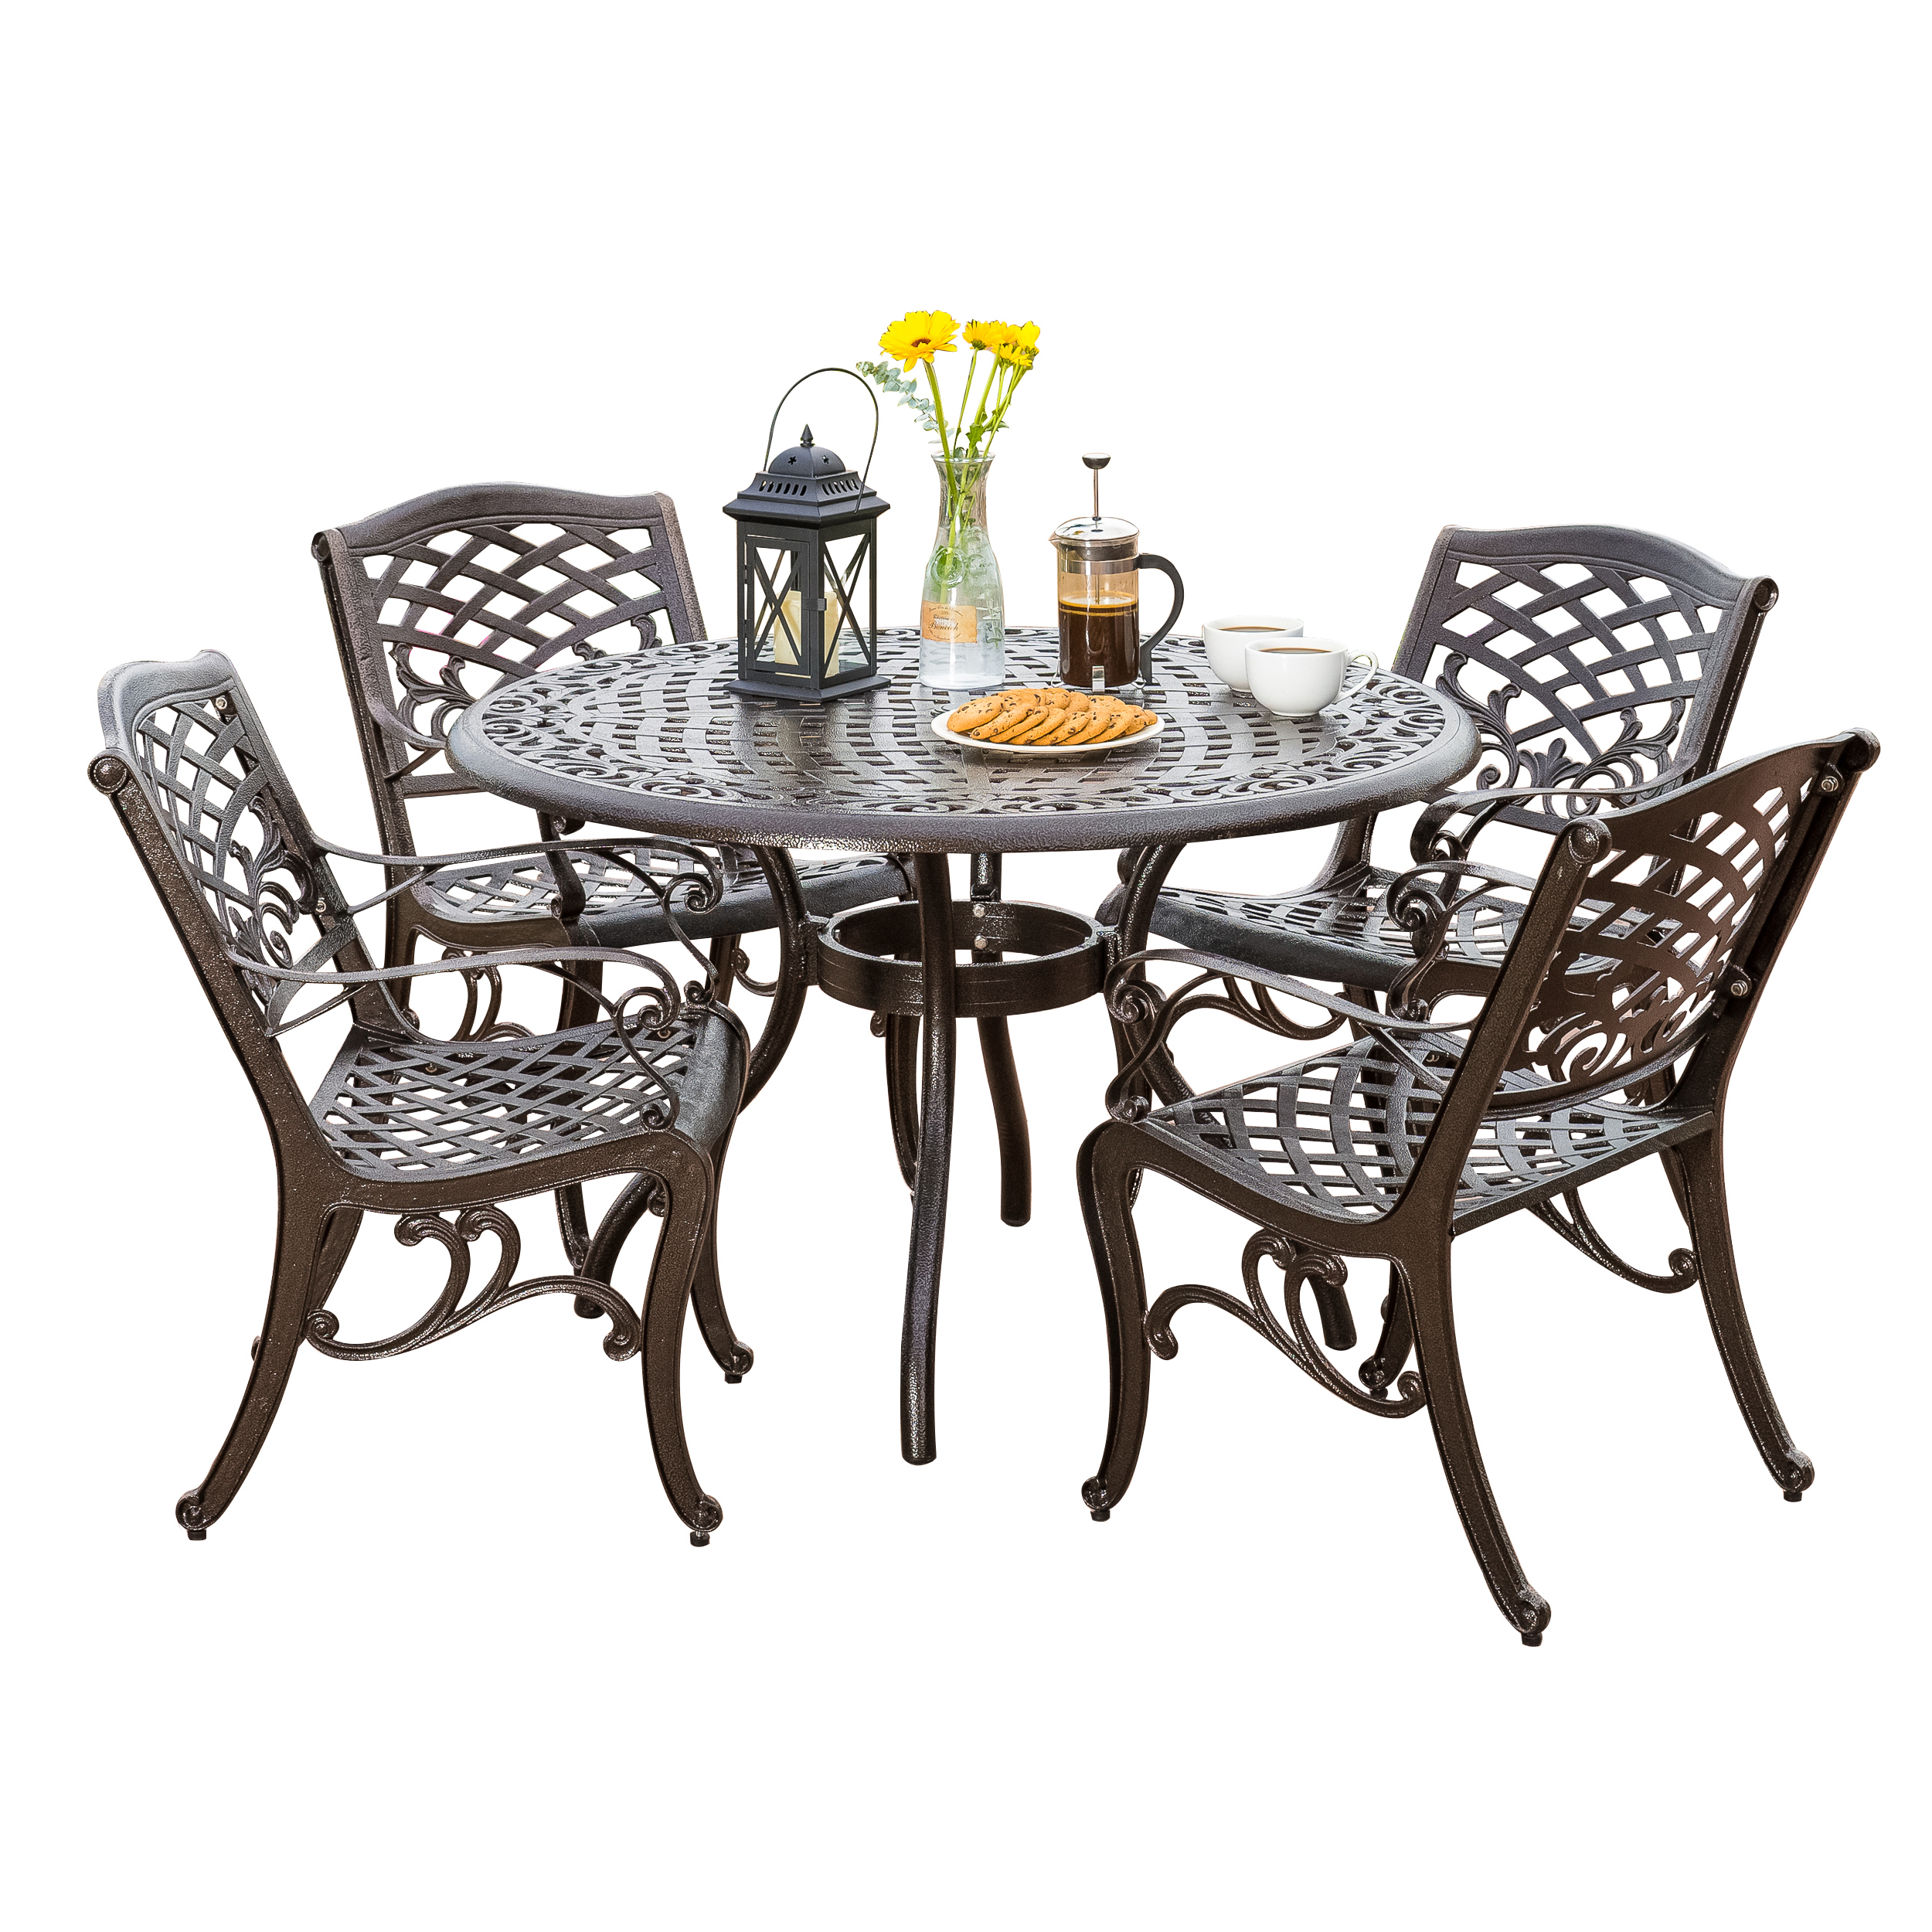 outdoor dining room sets porch table patio furniture deals from noble house dining sets walmartcom